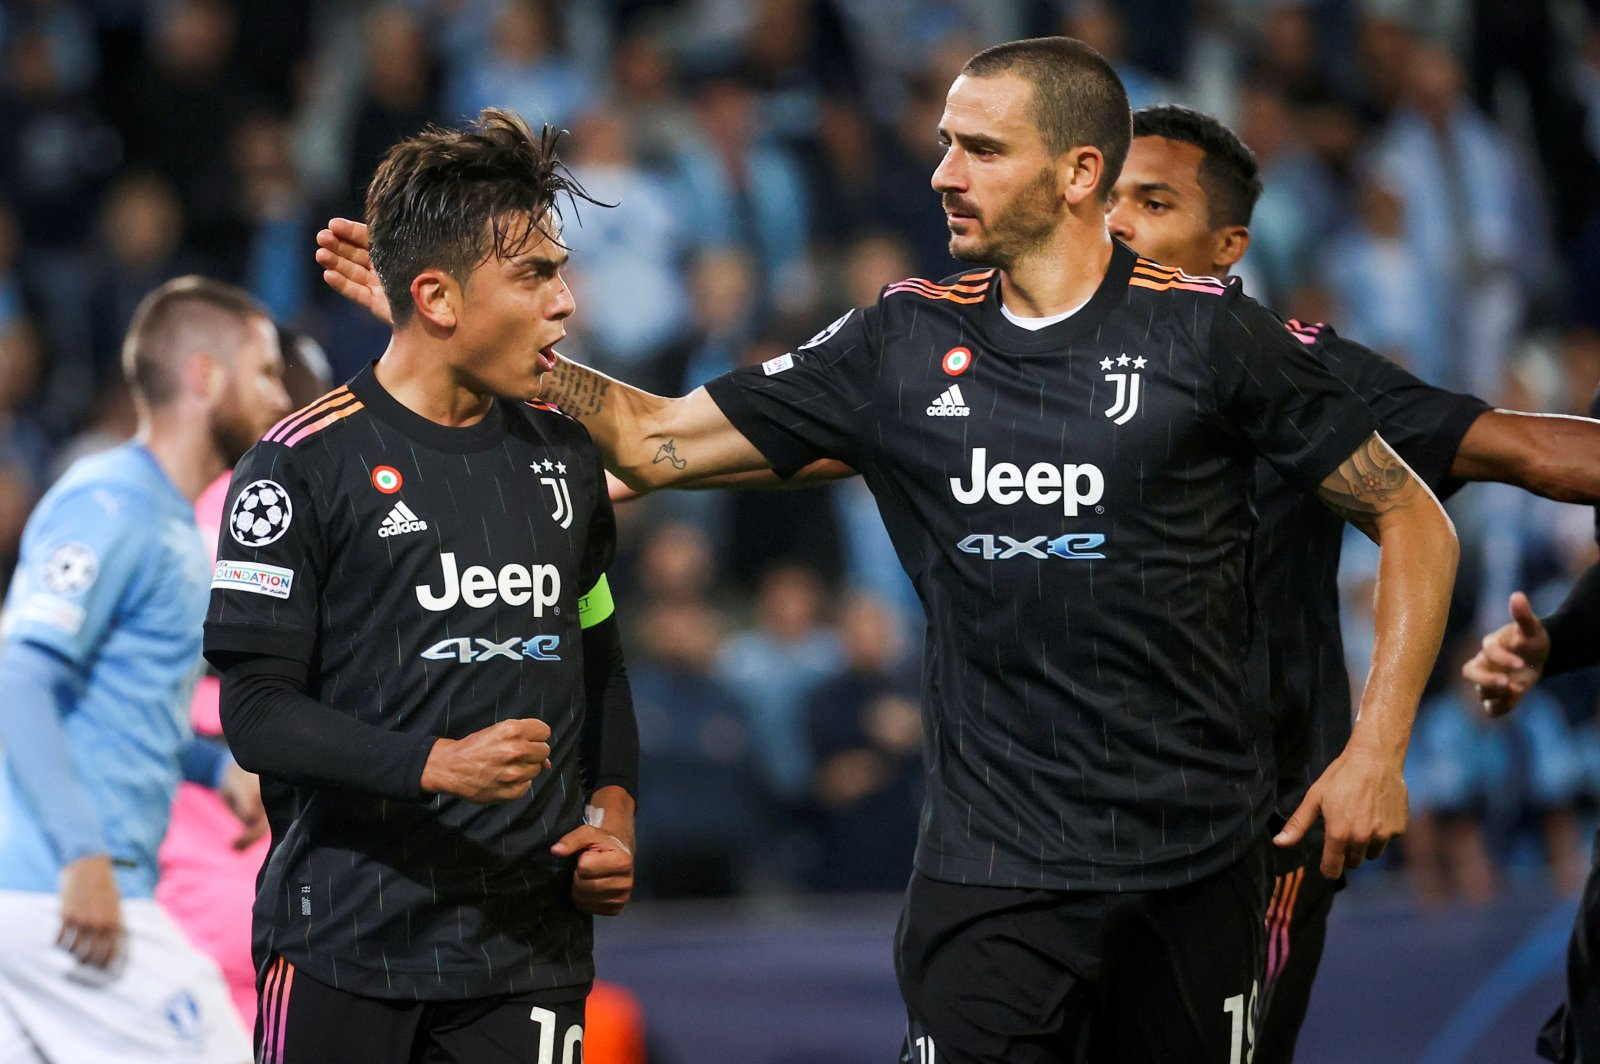 Juventus cruise past Malmo in Champions League opener